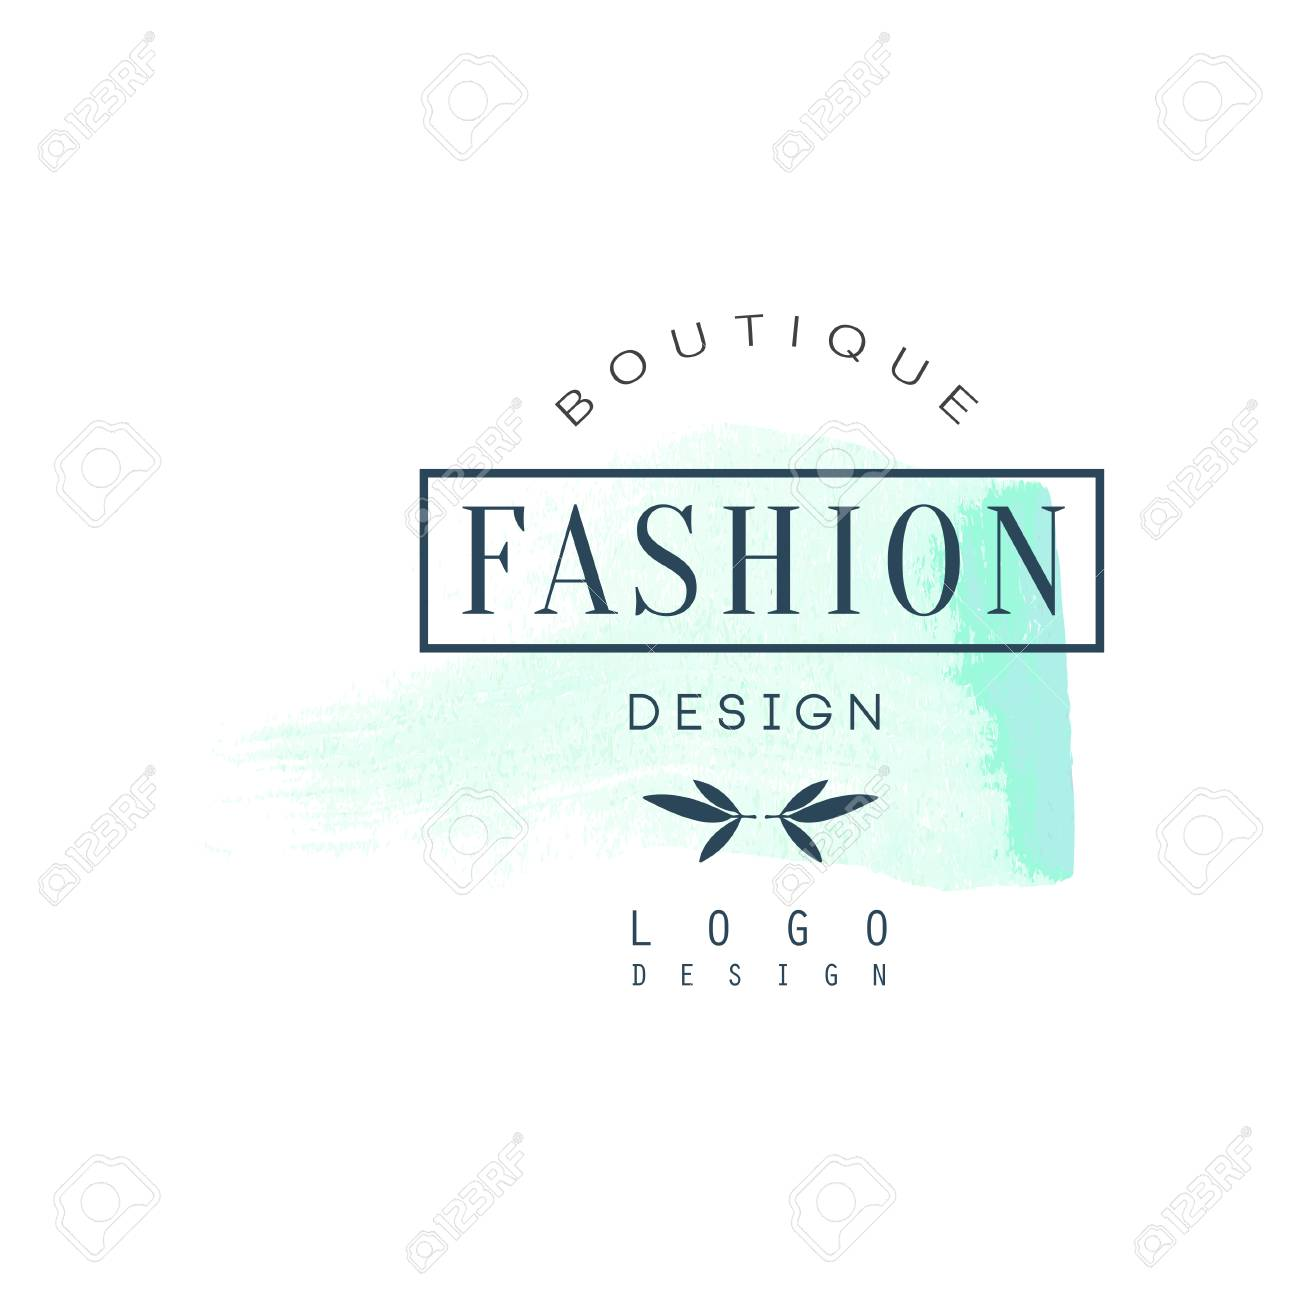 Fashion Boutique Logo Design Badge For Clothes Shop Beauty Royalty Free Cliparts Vectors And Stock Illustration Image 89188701